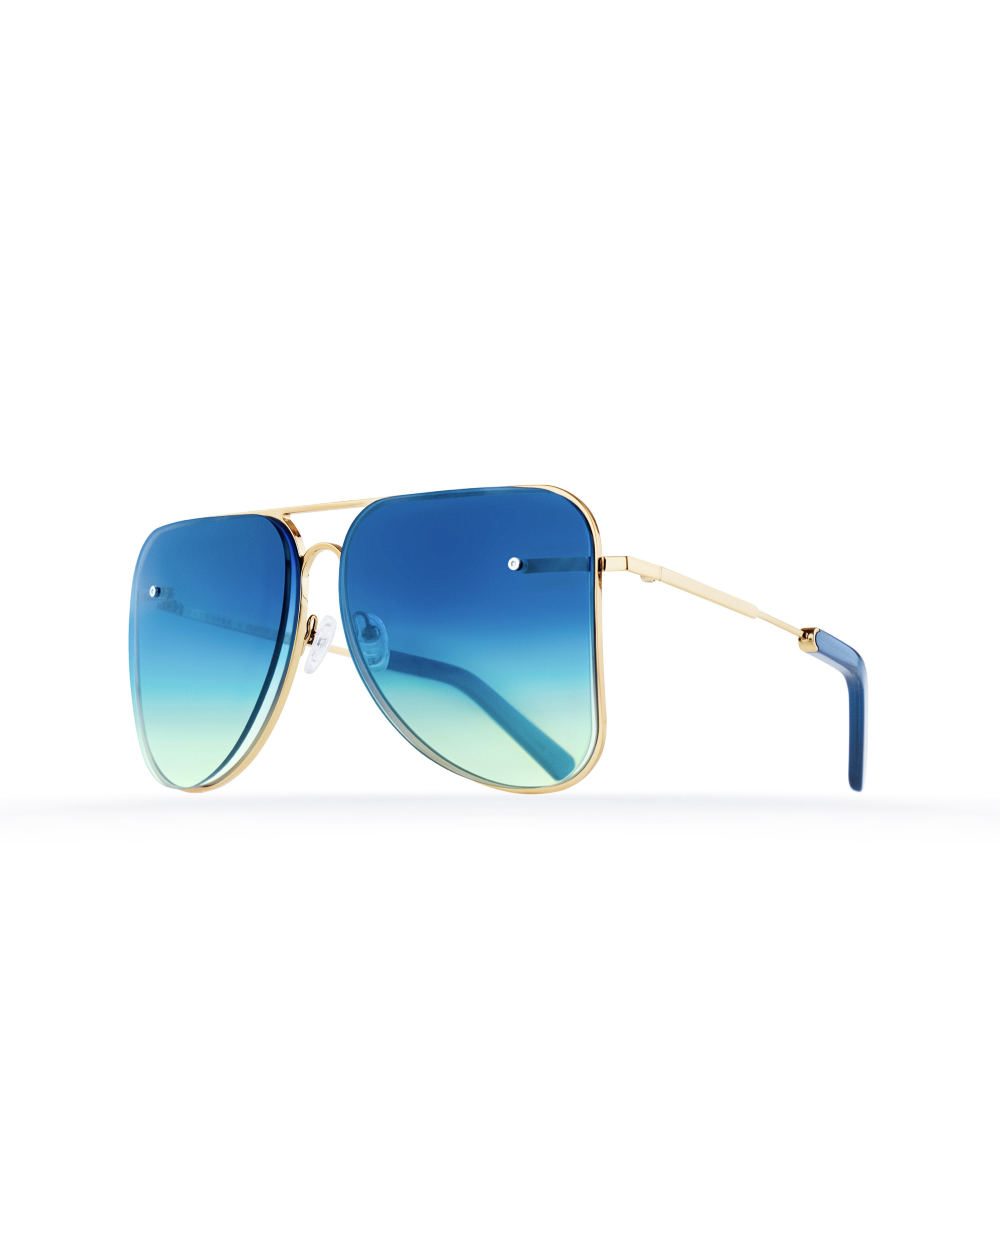 Light blue aviator Model 1. Golden metal frame